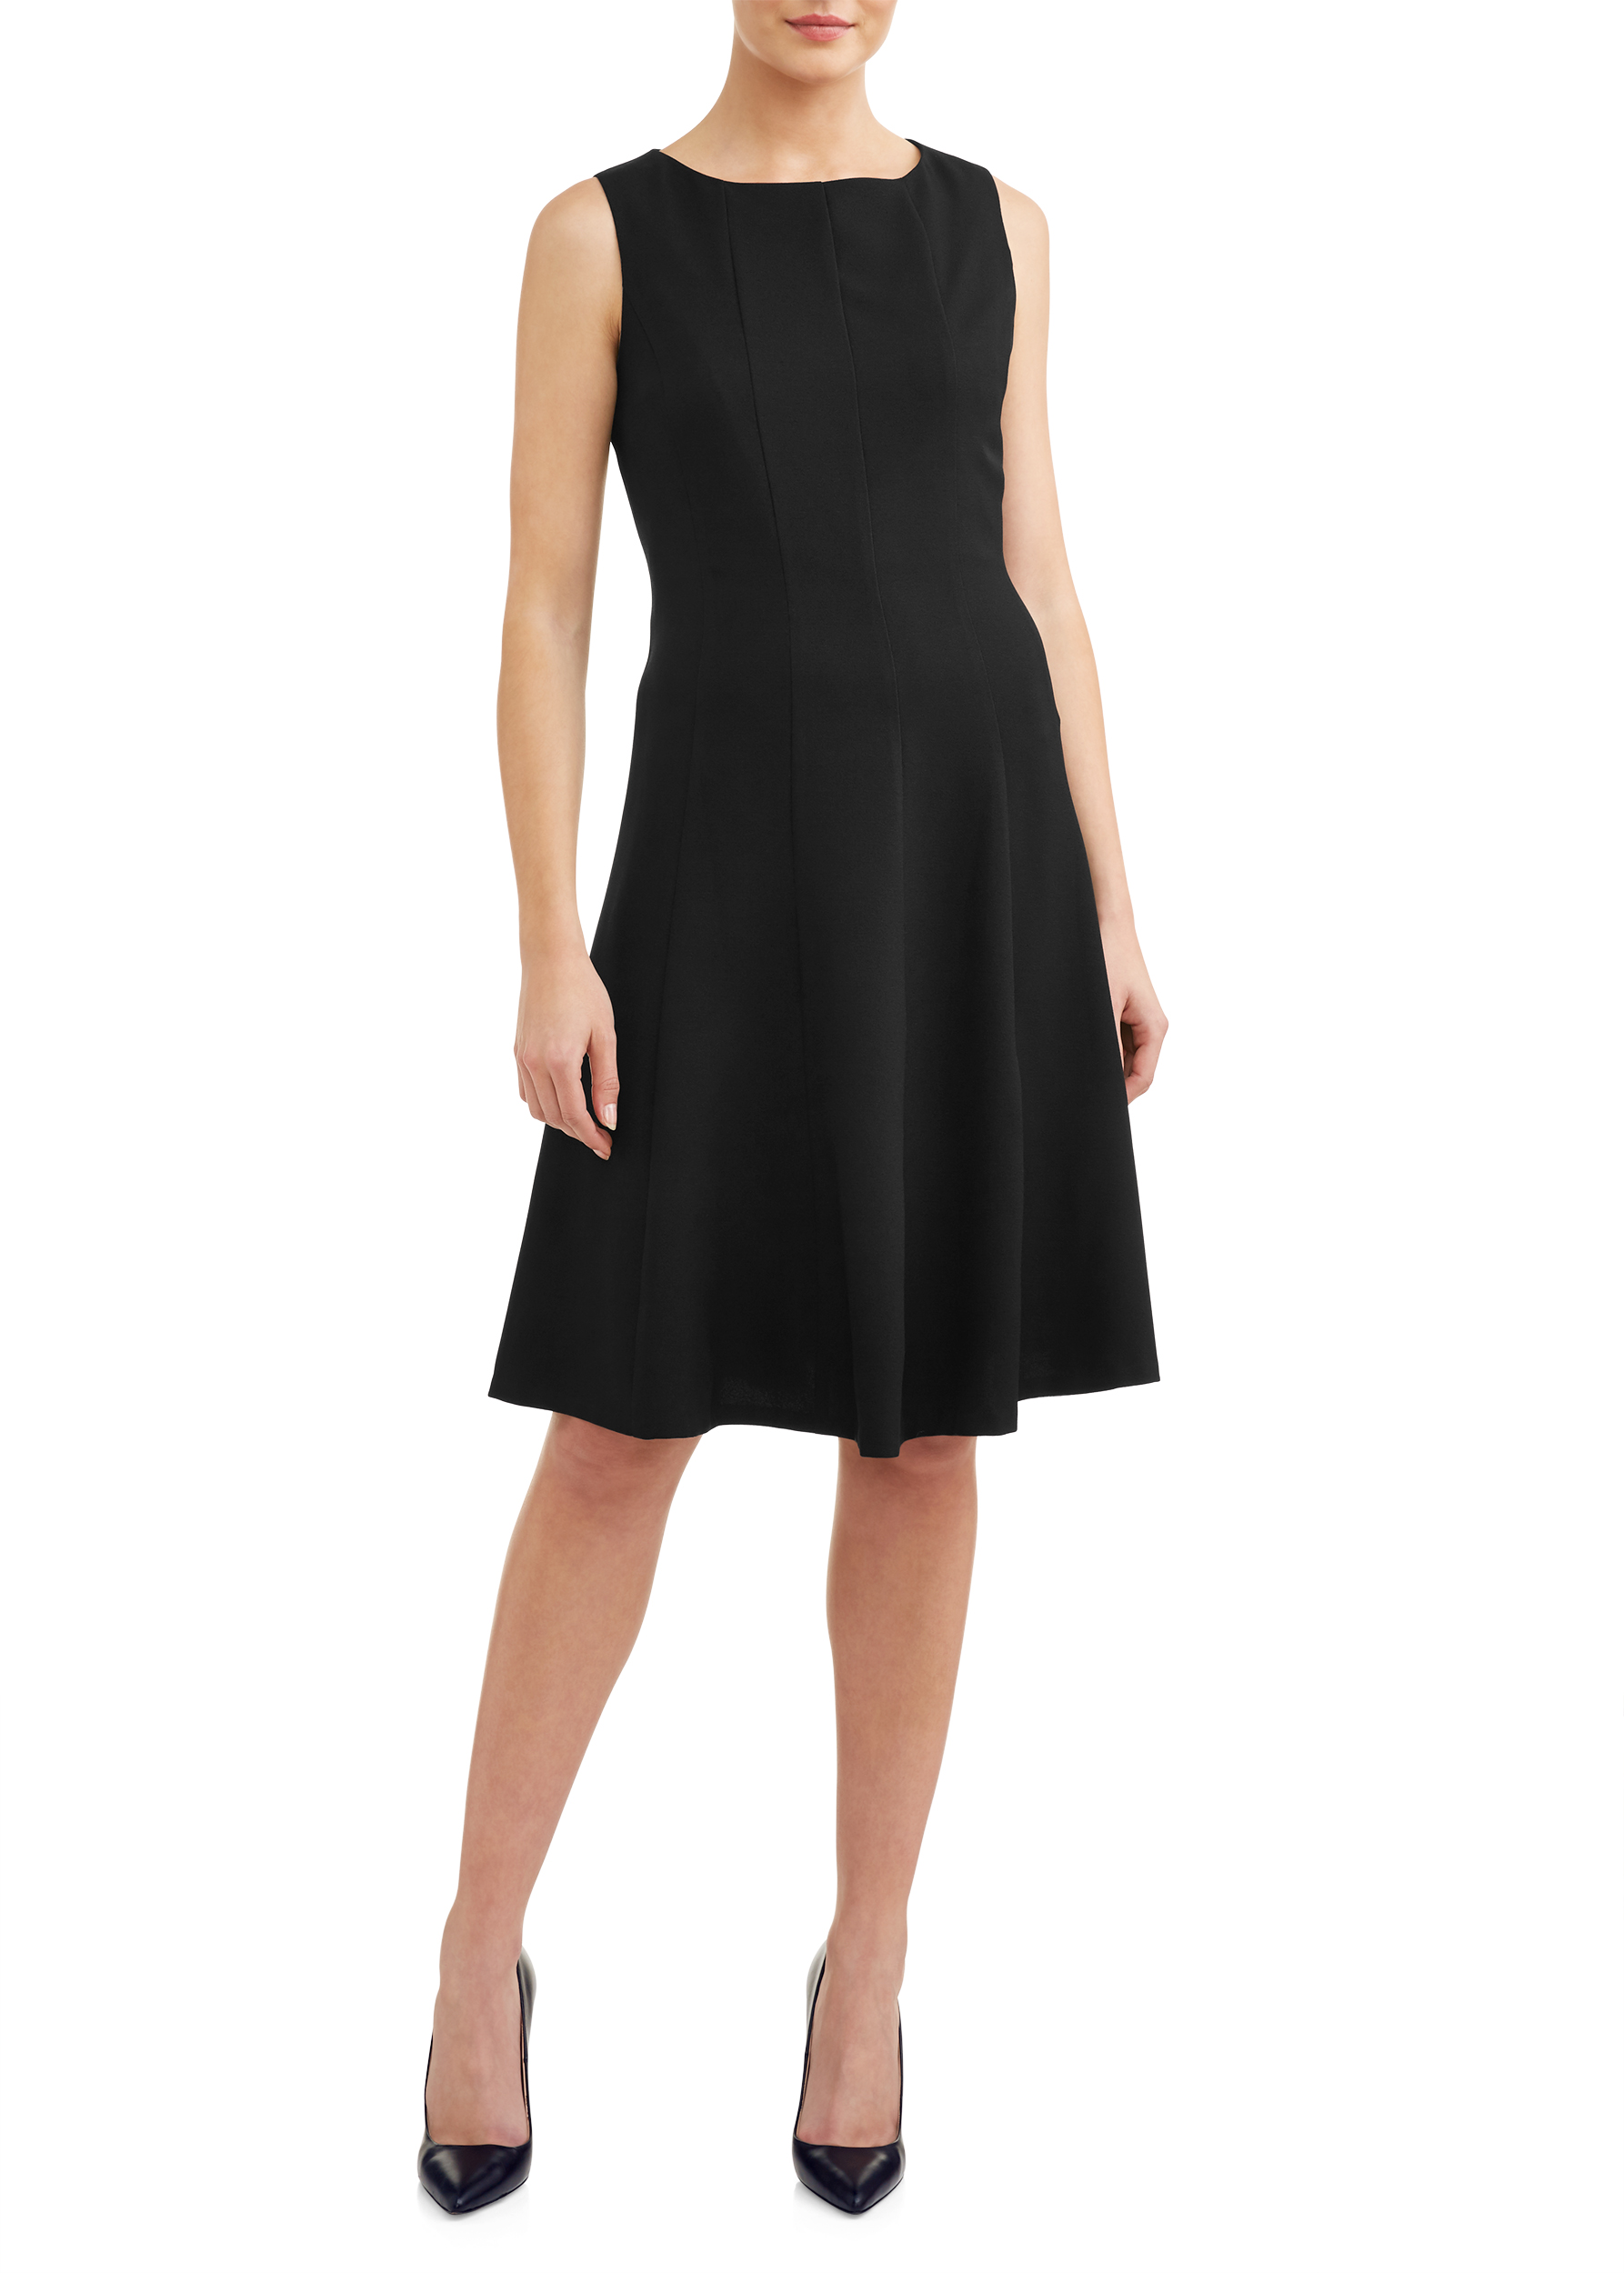 Women's Essential Multi Seam Sleeveless Dress